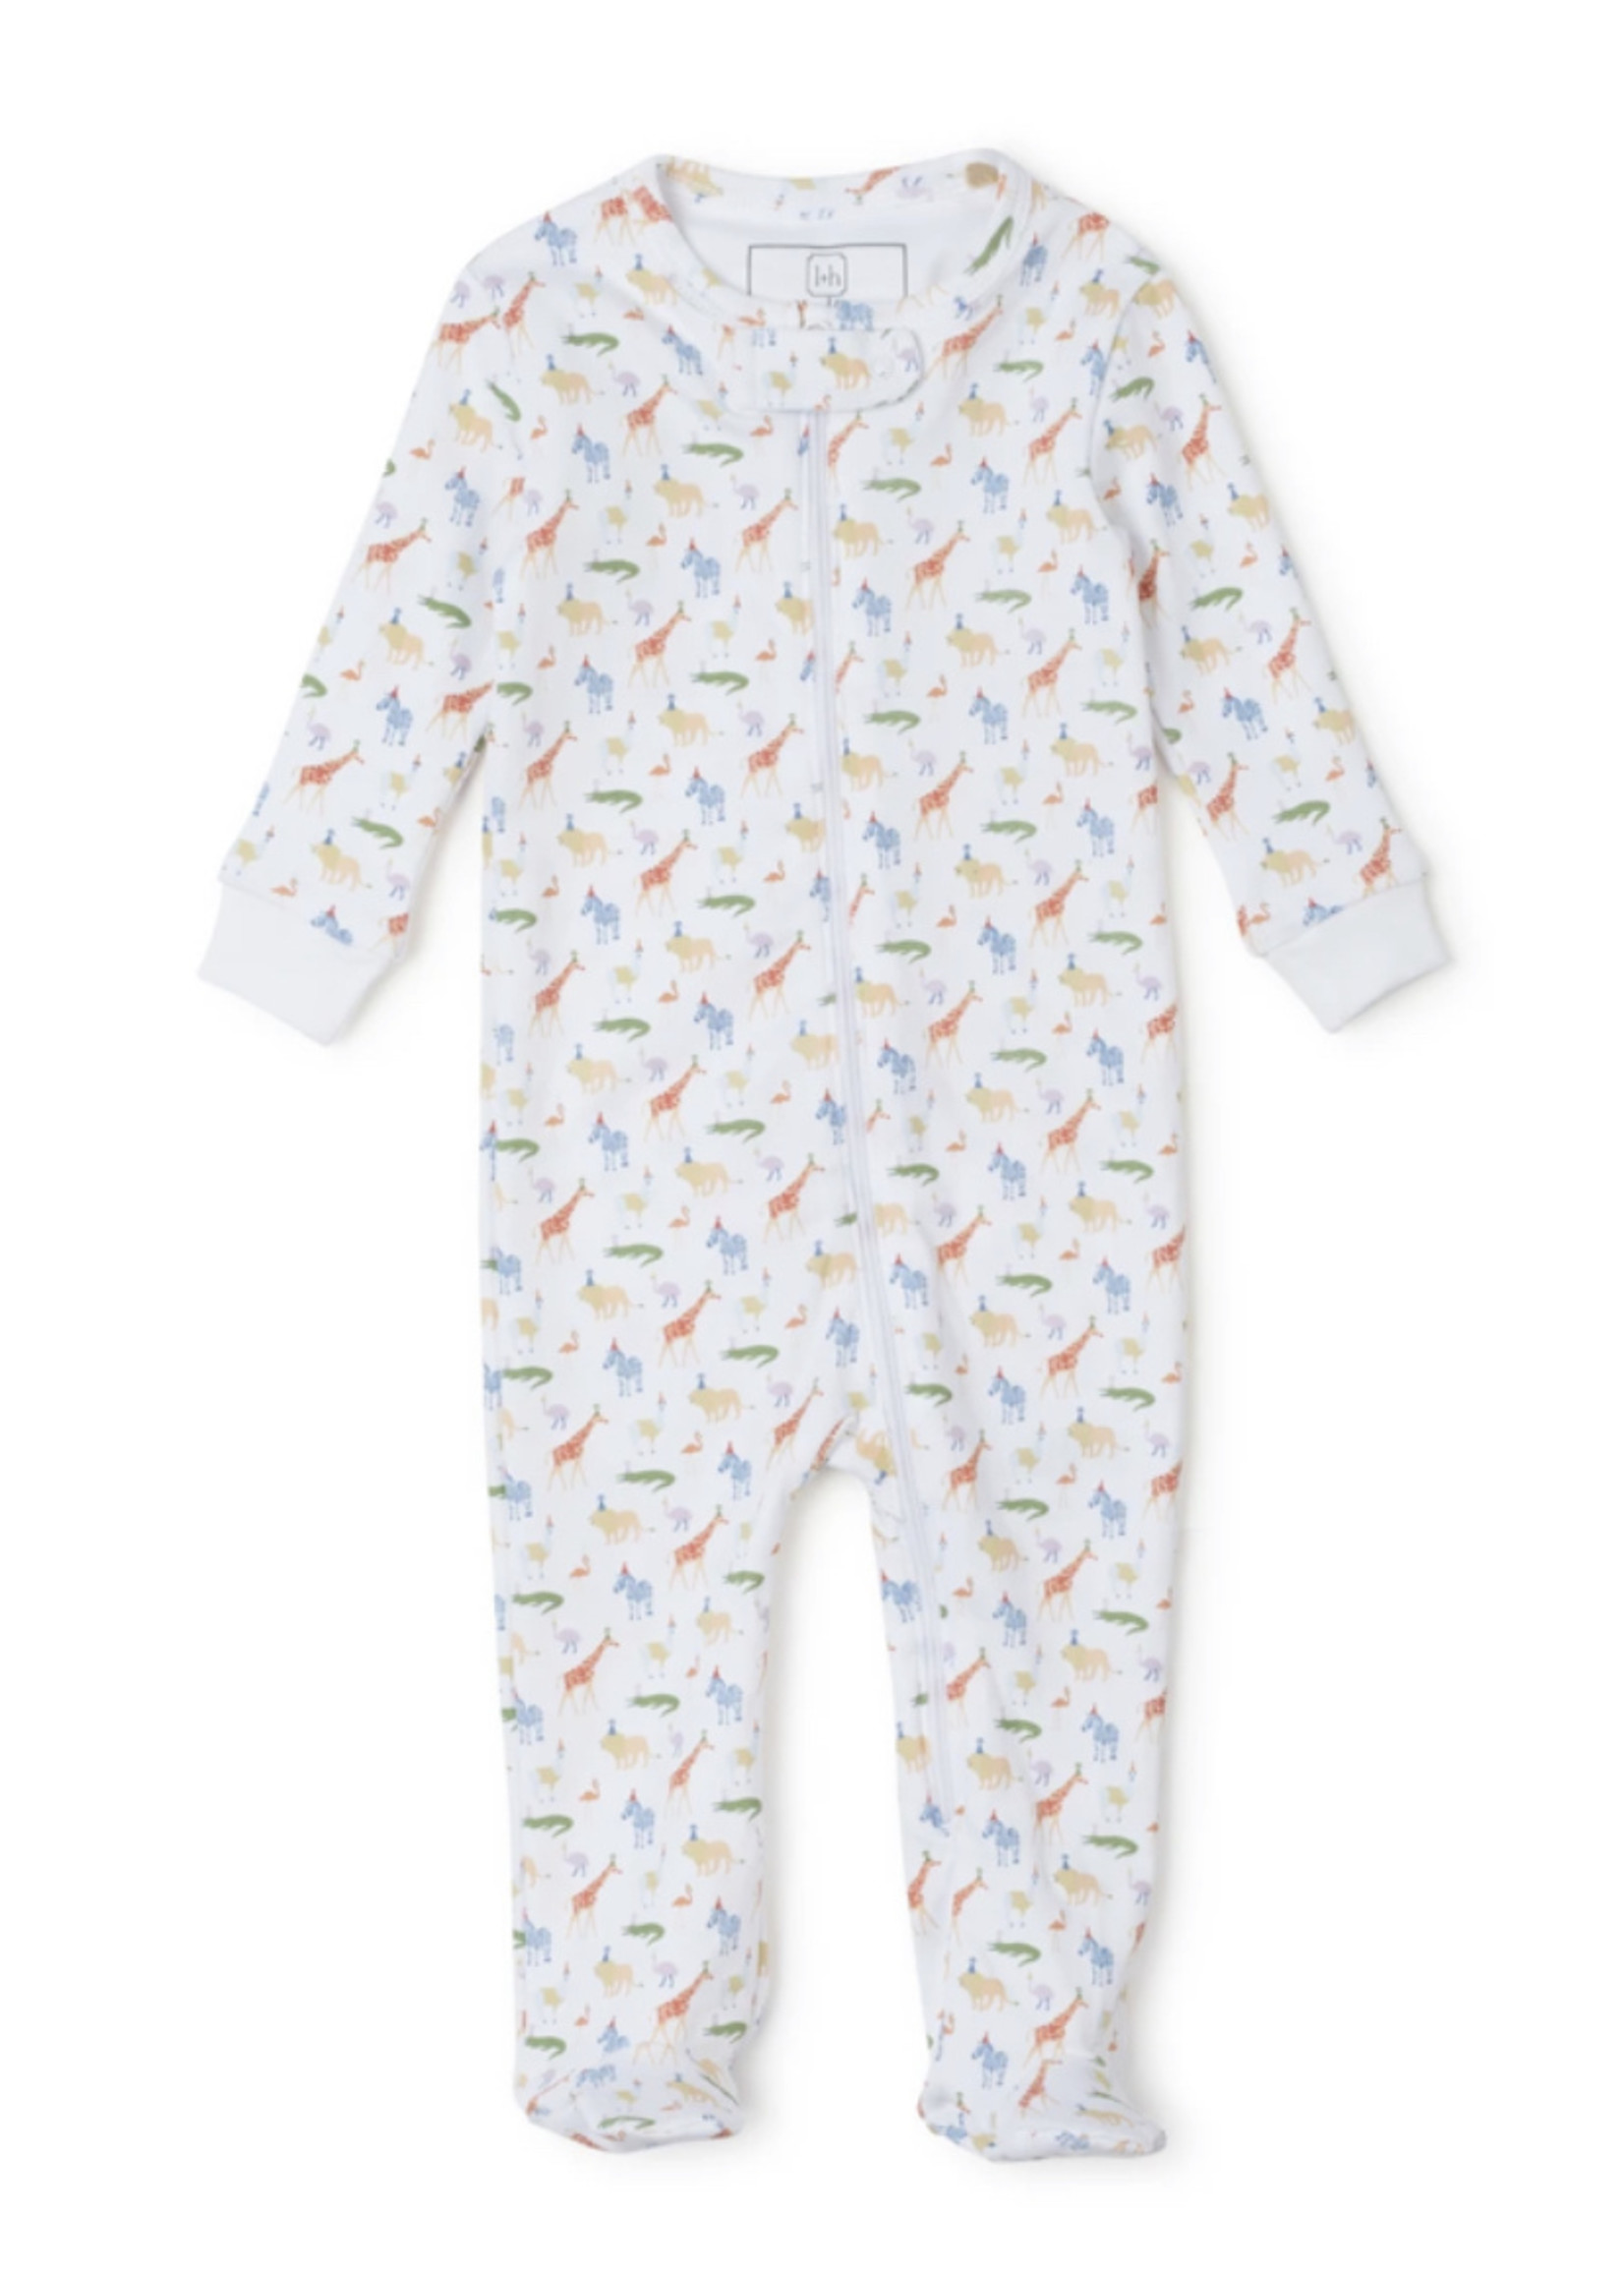 Lila & Hayes Parker Zipper Party Animals